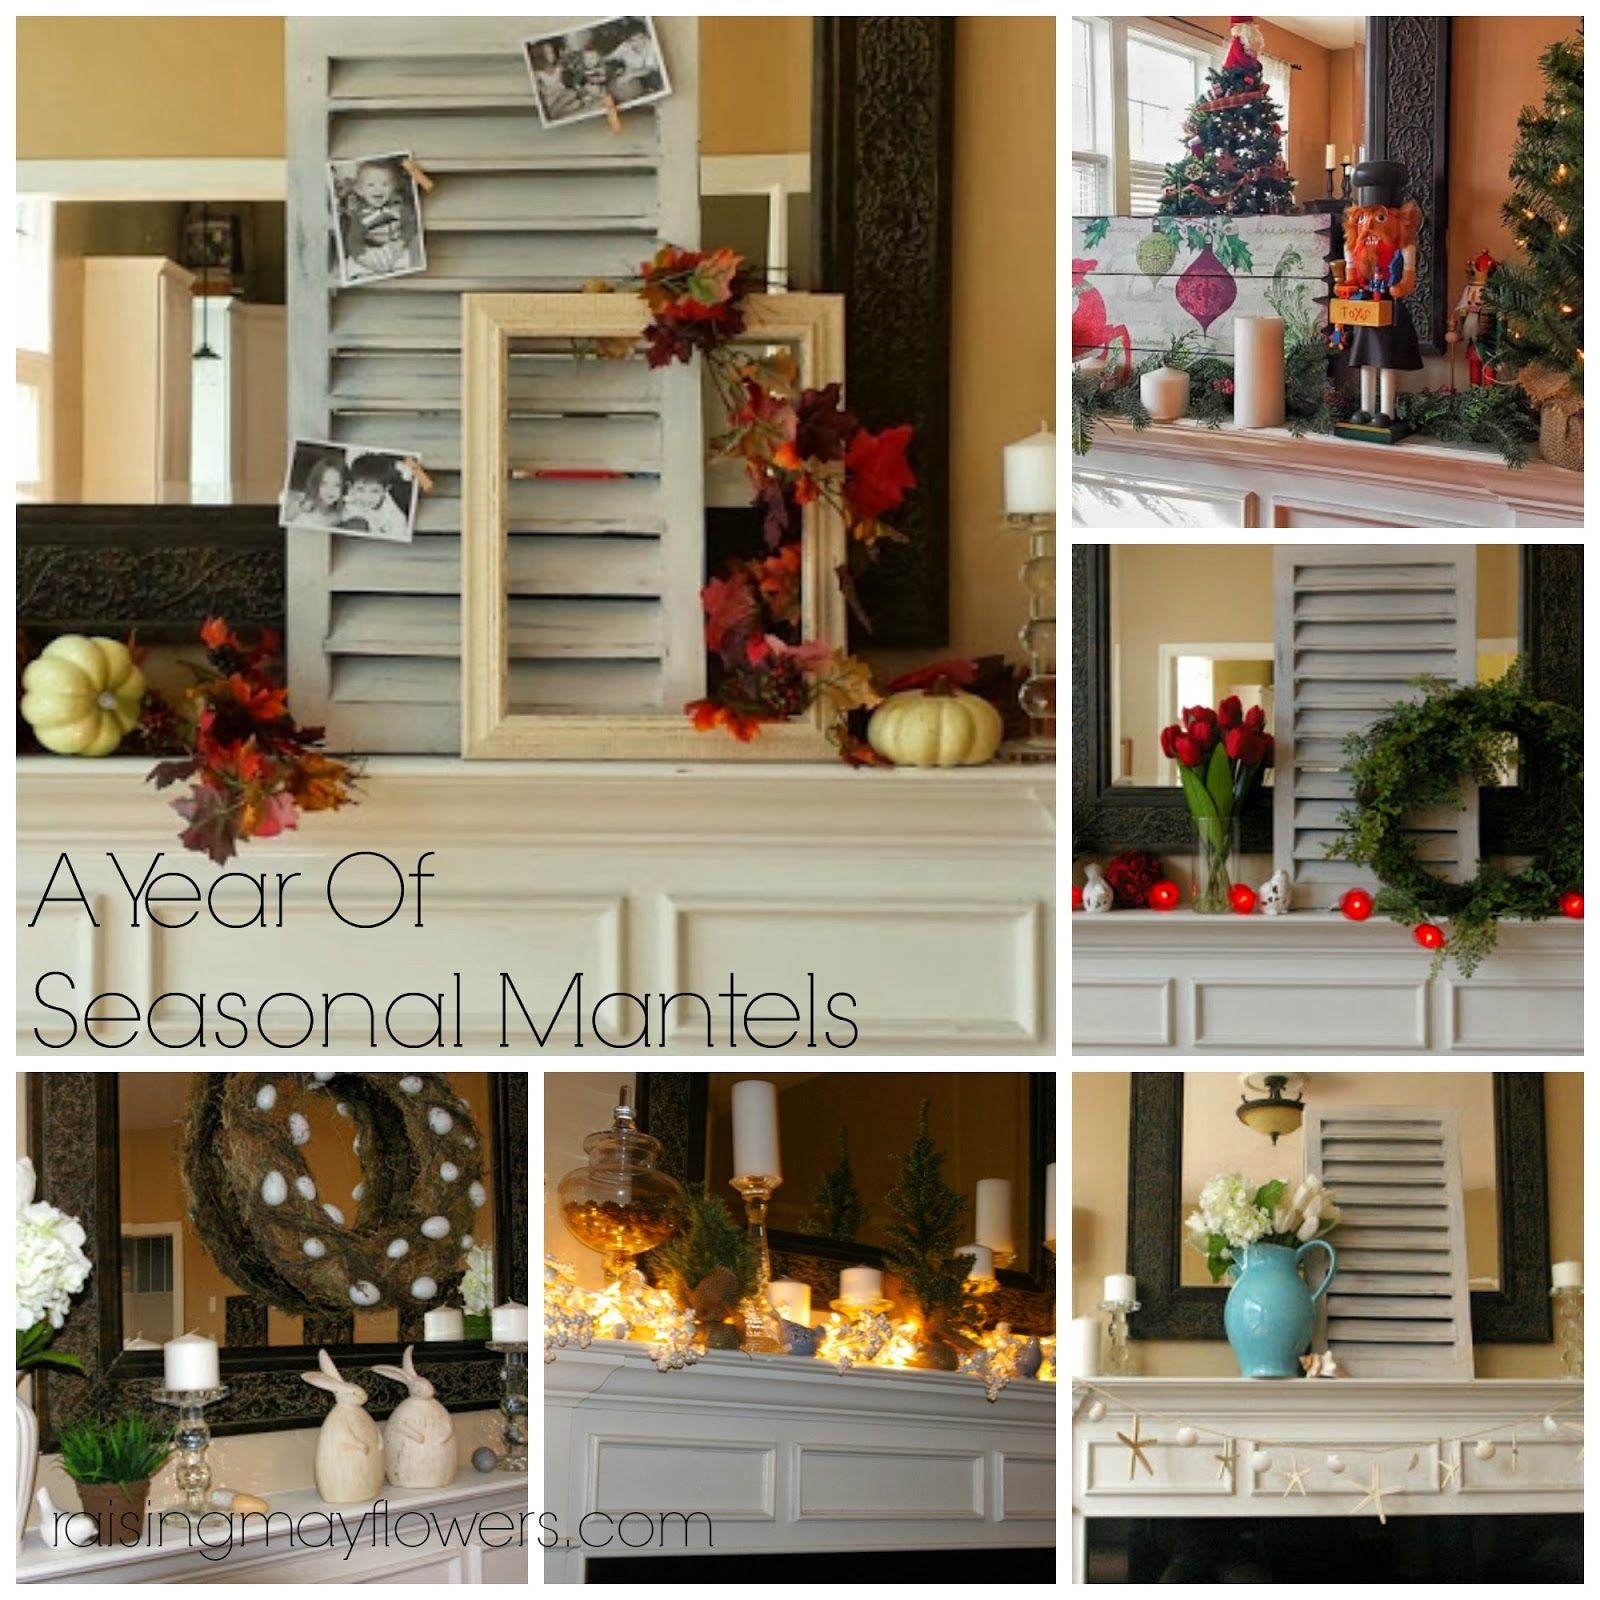 2013 Neutral Living Room Decorating Ideas From Bhg: Neutral Decor With Season Changes